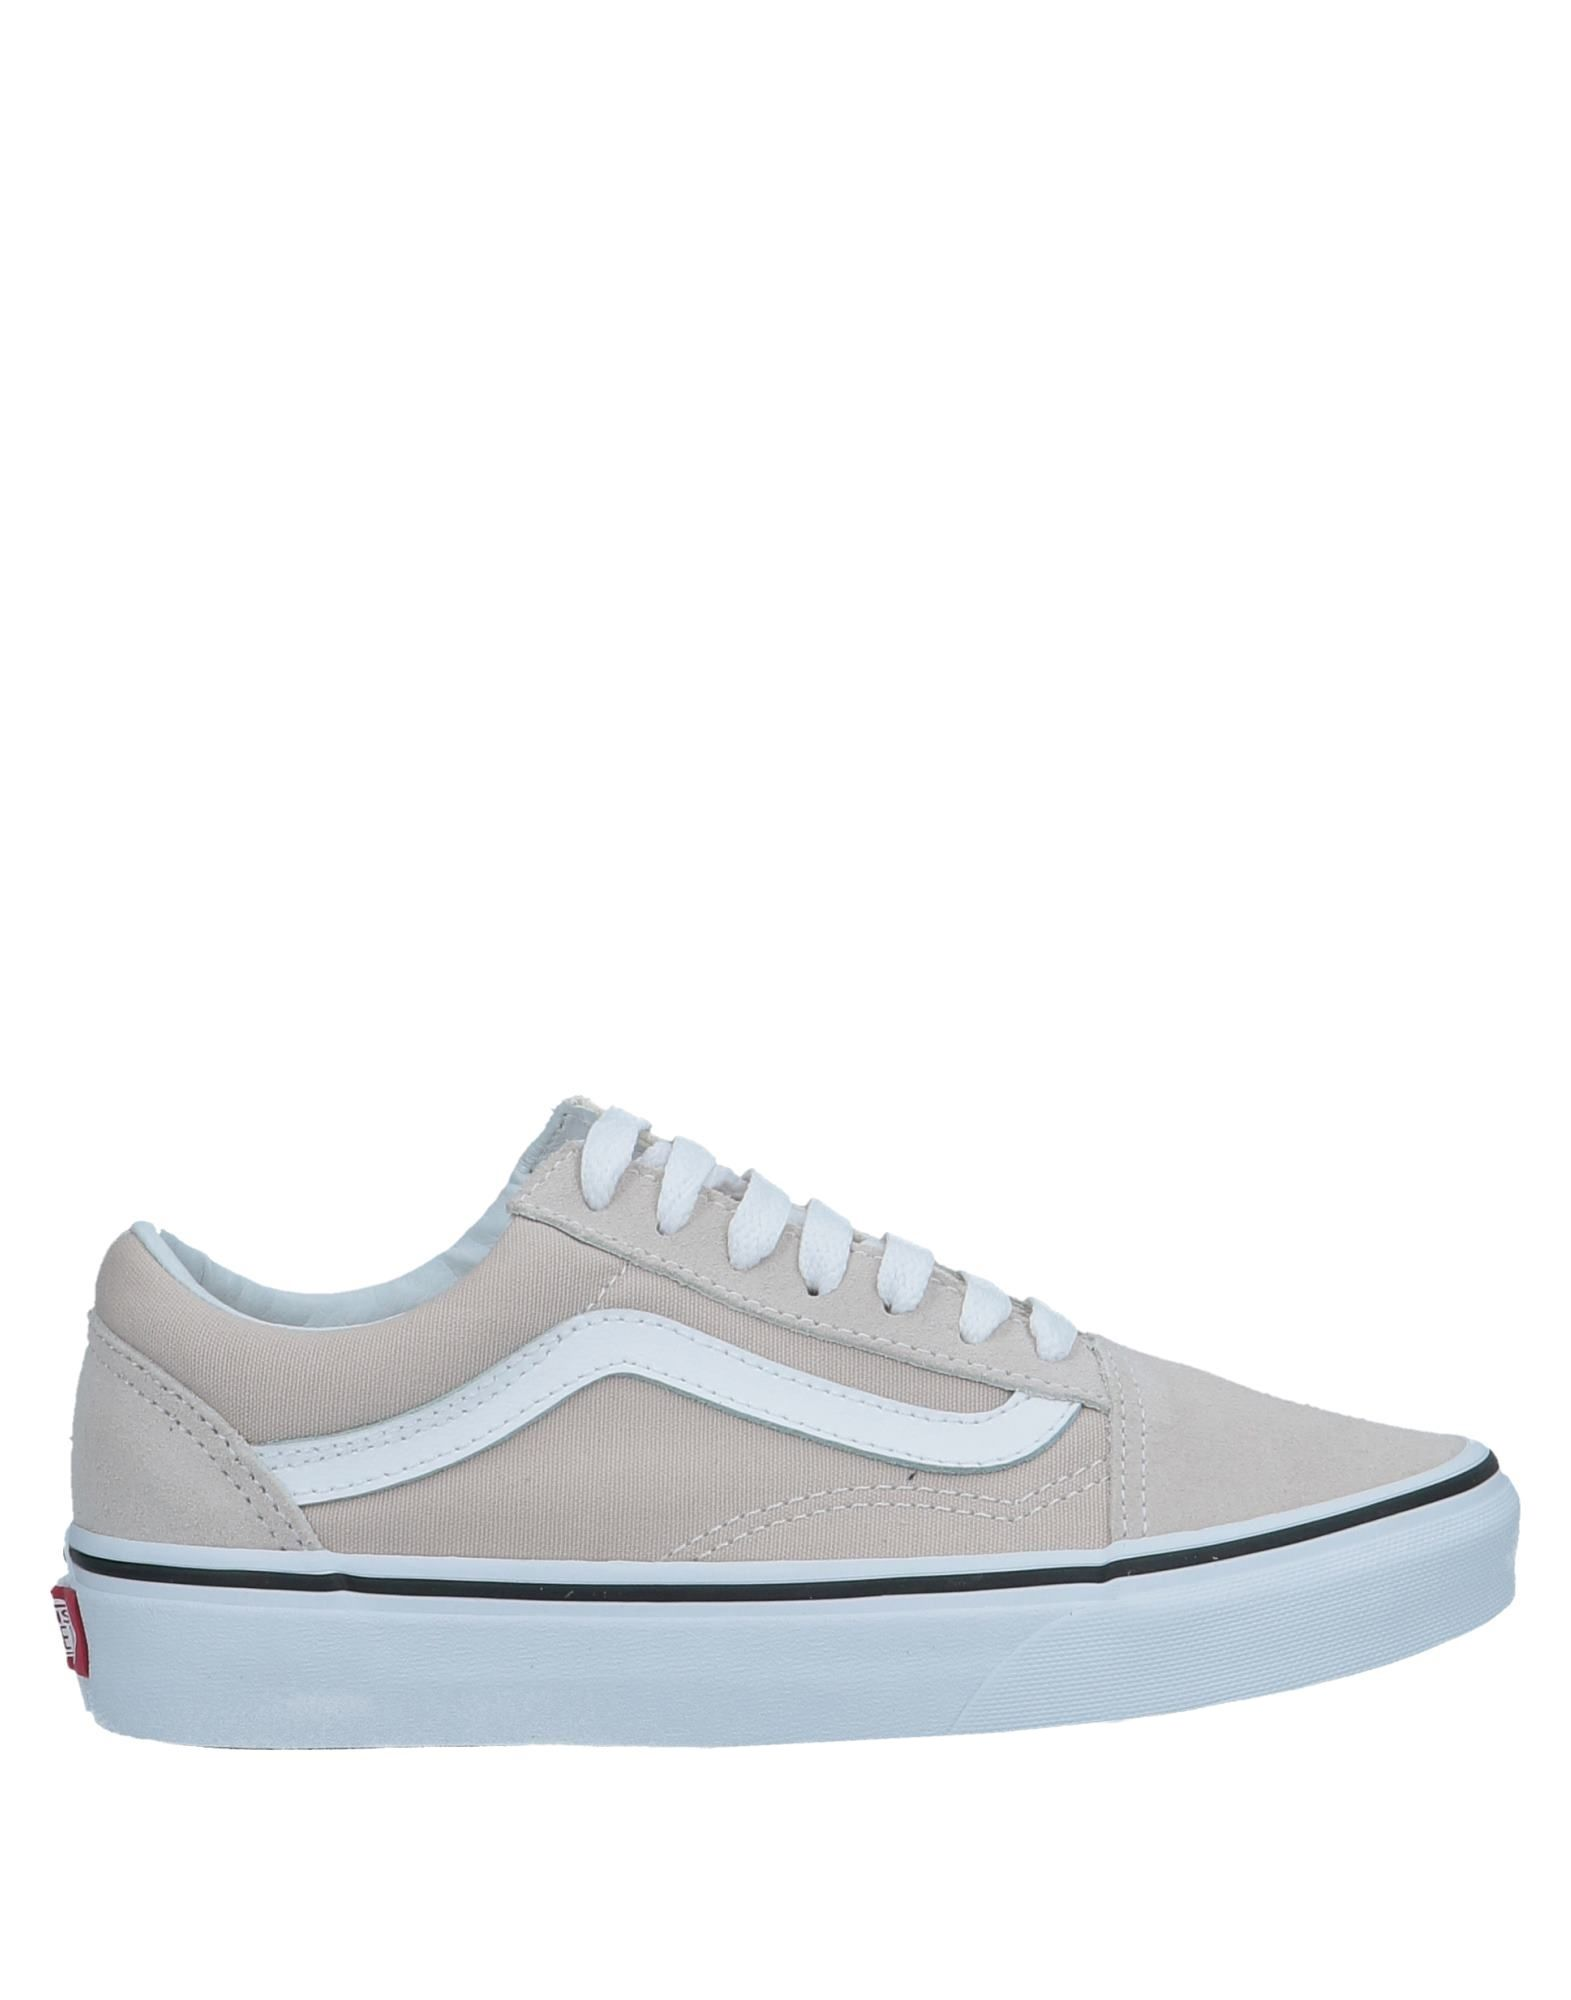 Vans Sneakers Sneakers - Women Vans Sneakers Vans online on  Canada - 11574111DF e8d47c